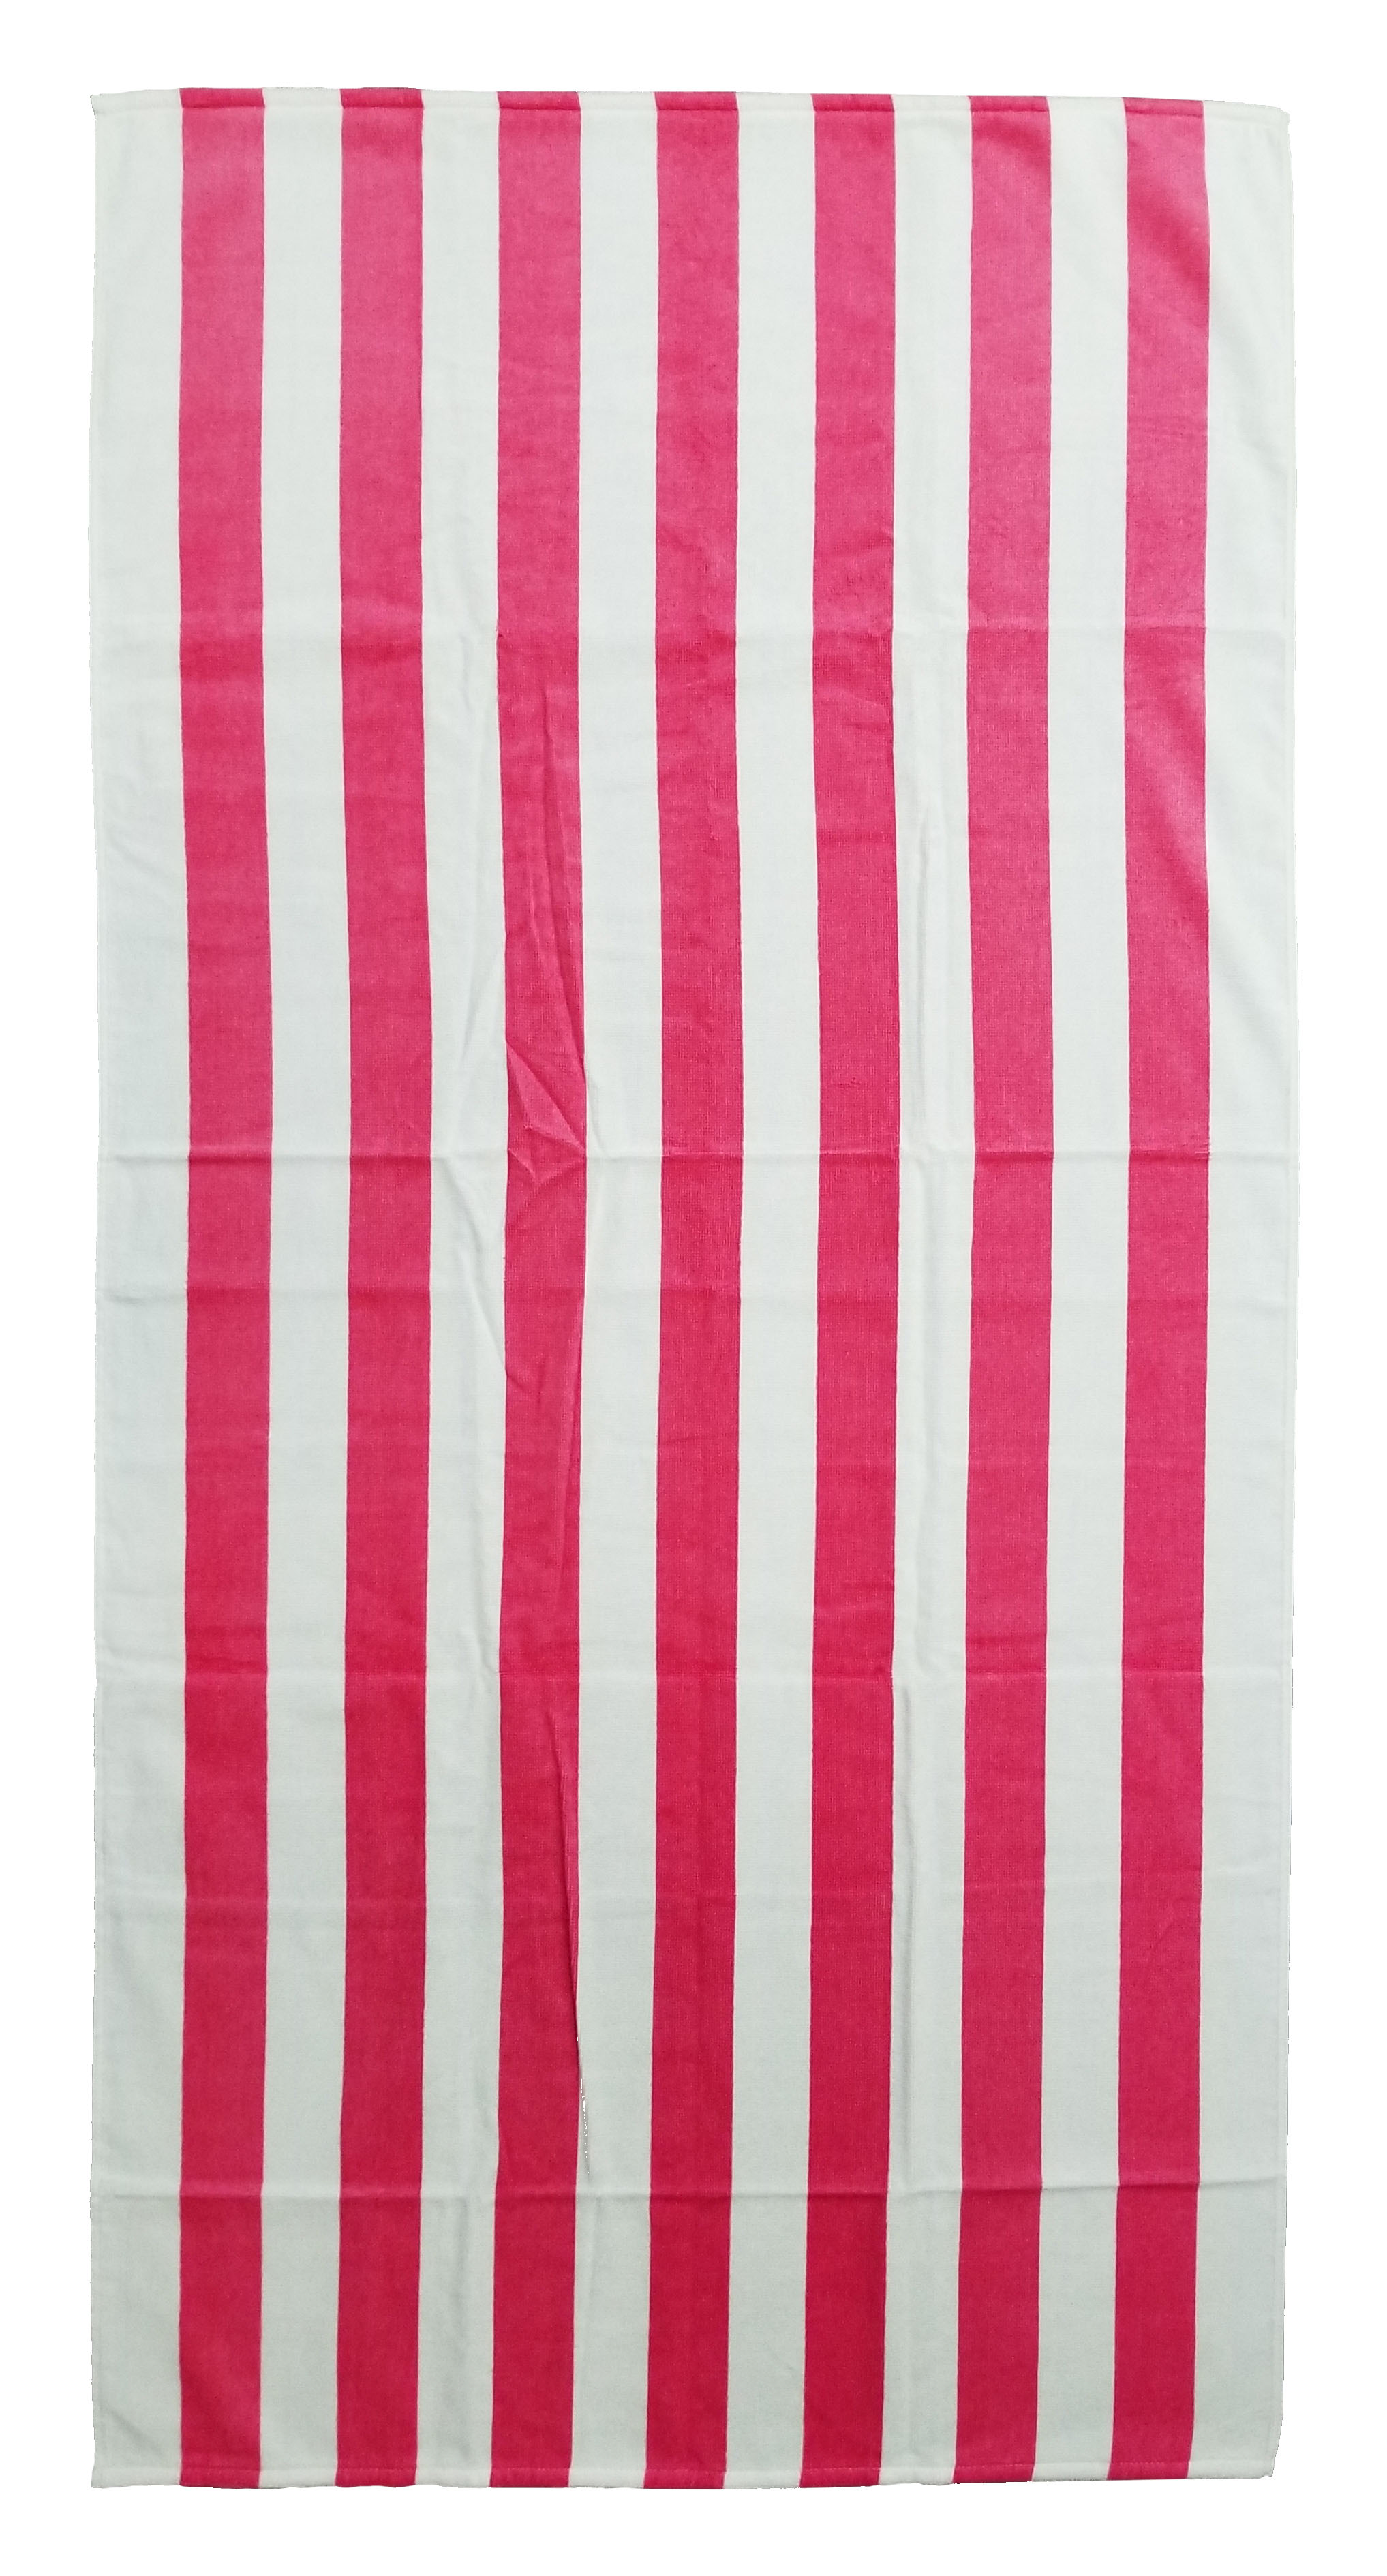 SILKSCREEN 30x60 Pink Cabana Striped Beach Towel Bahia Collection by D&oumlhler.